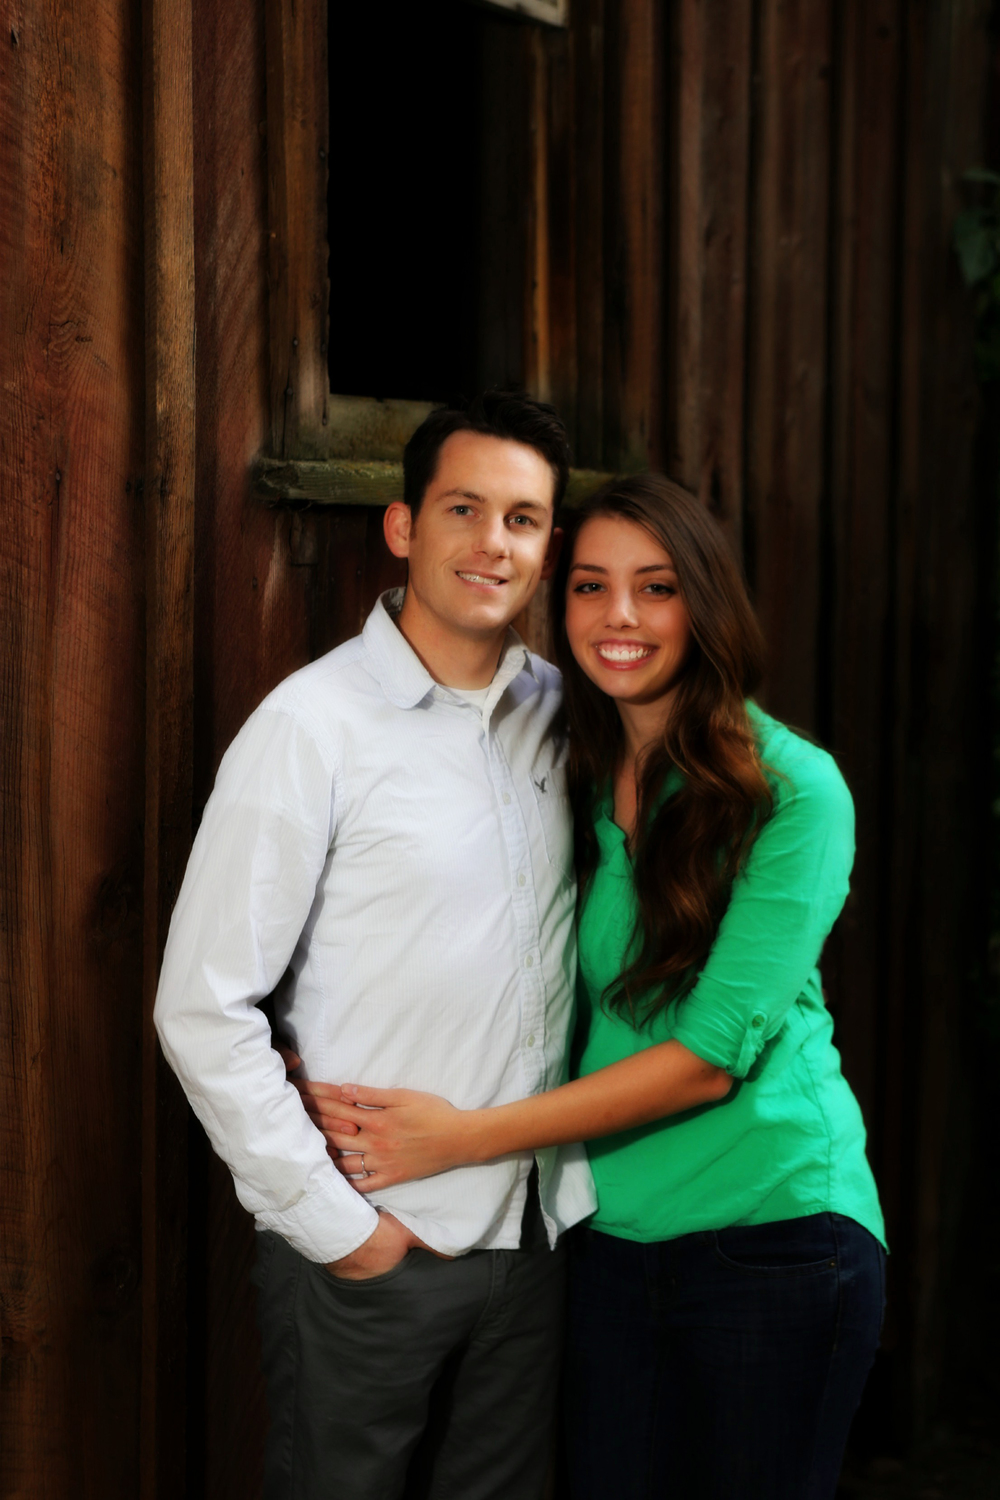 Bountiful Portrait Studio, Outdoor Wedding engagements